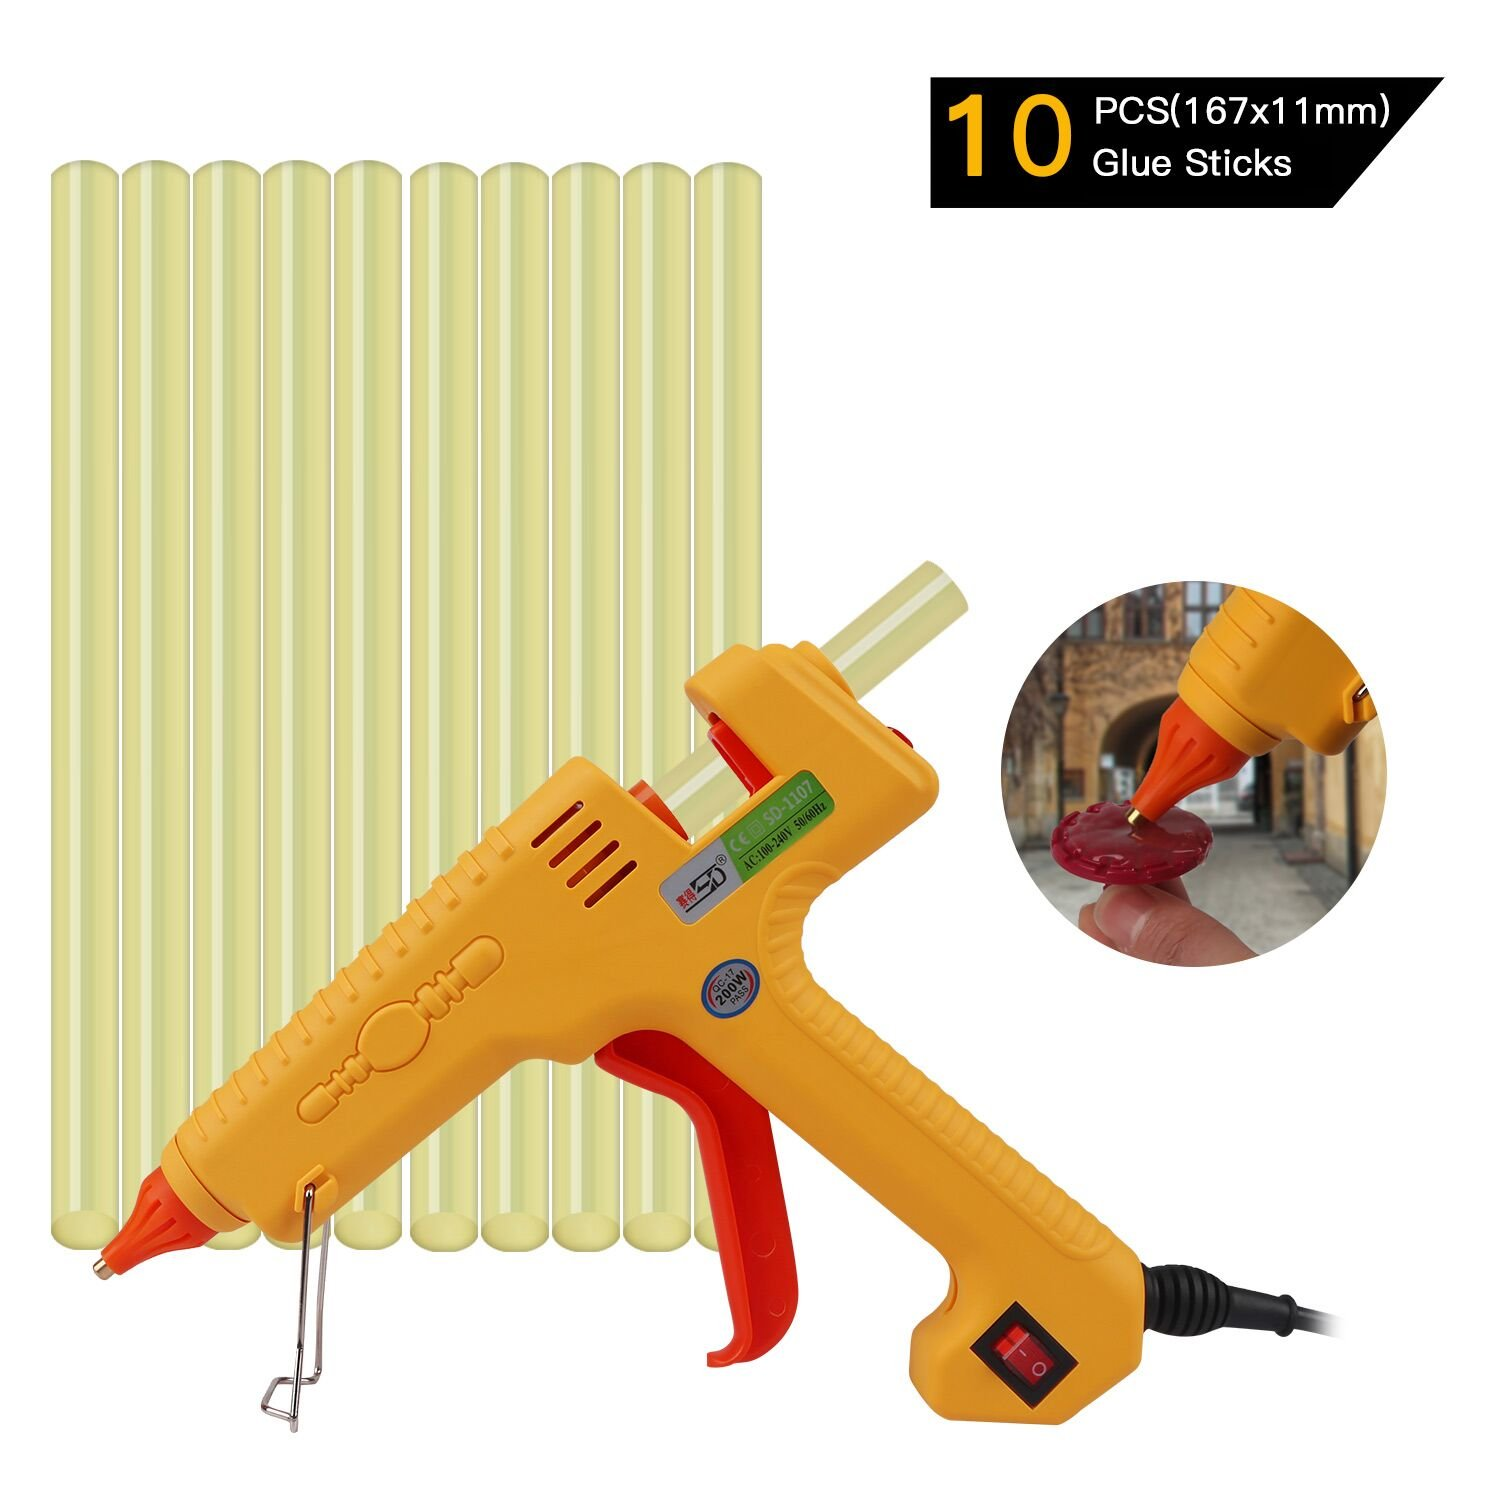 FLY5D 200W Hot Melt PDR Glue Gun With 10pcs Super Sticky Glue Sticks for Auto Metal Dent Puller Repair Home Use DIY For Arts & Crafts & Sealing and Quick Repairs (200W glue gun set) by FLY5D